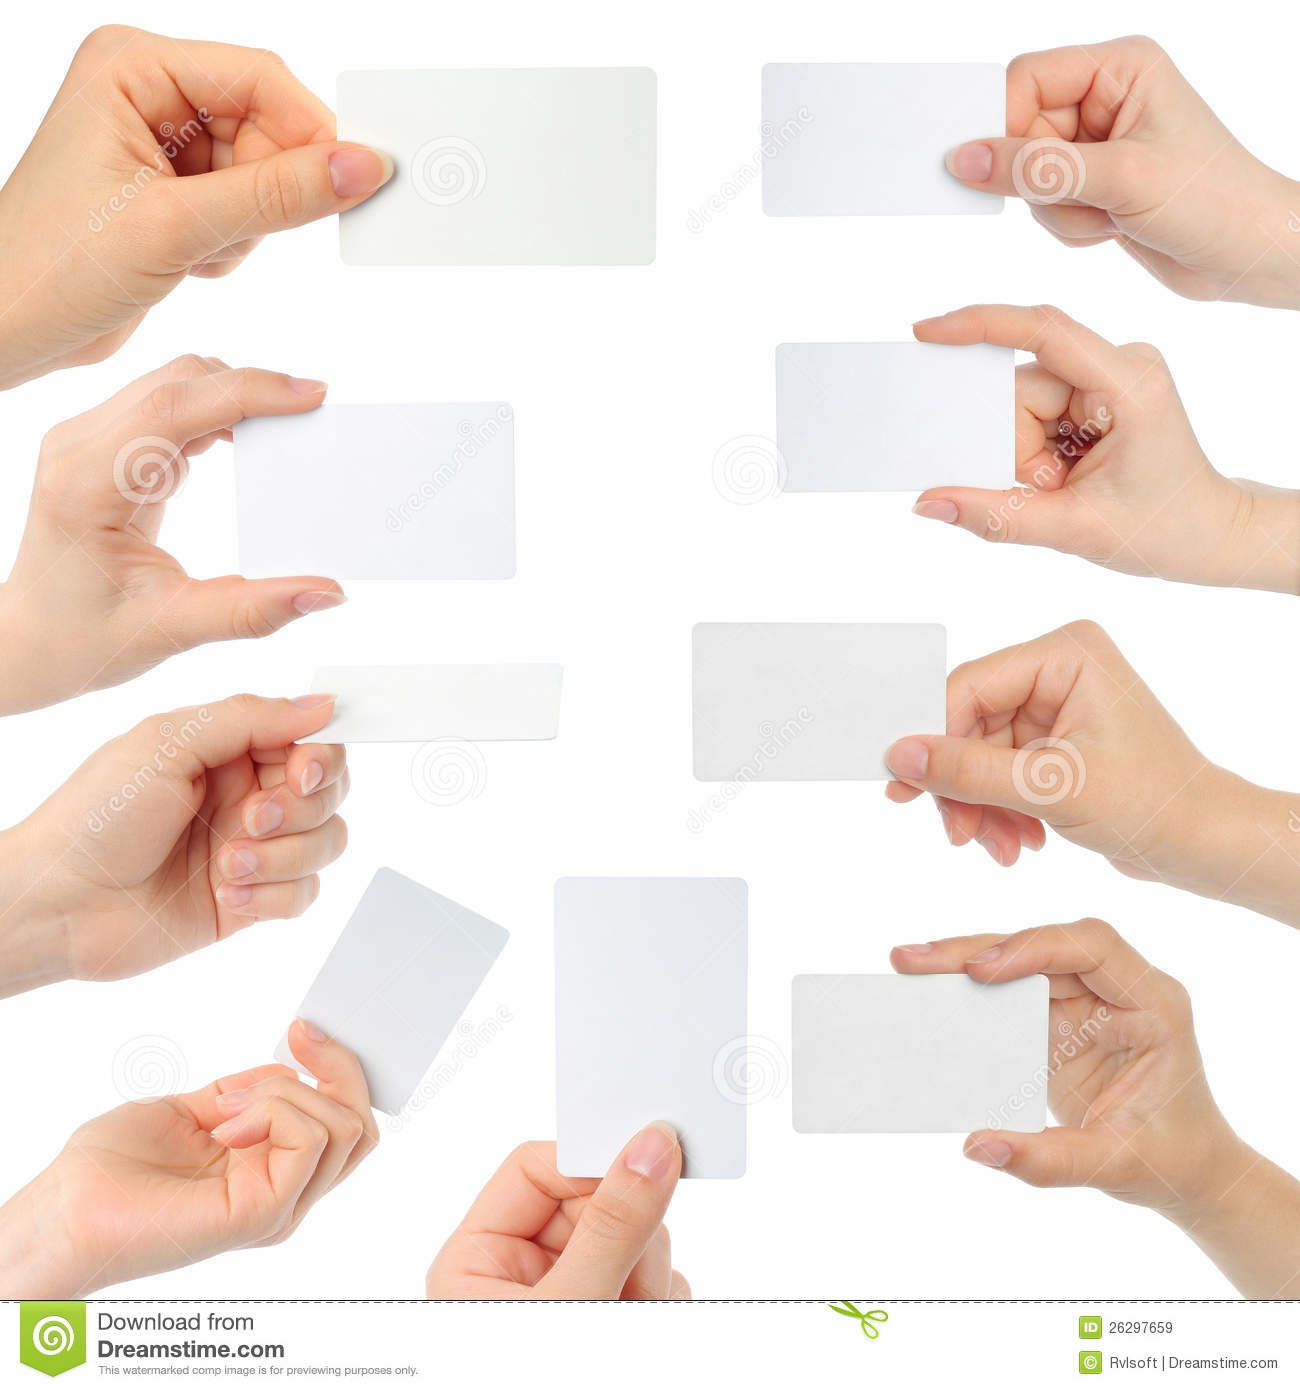 Hands hold business cards stock image. Image of advertising - 26297659